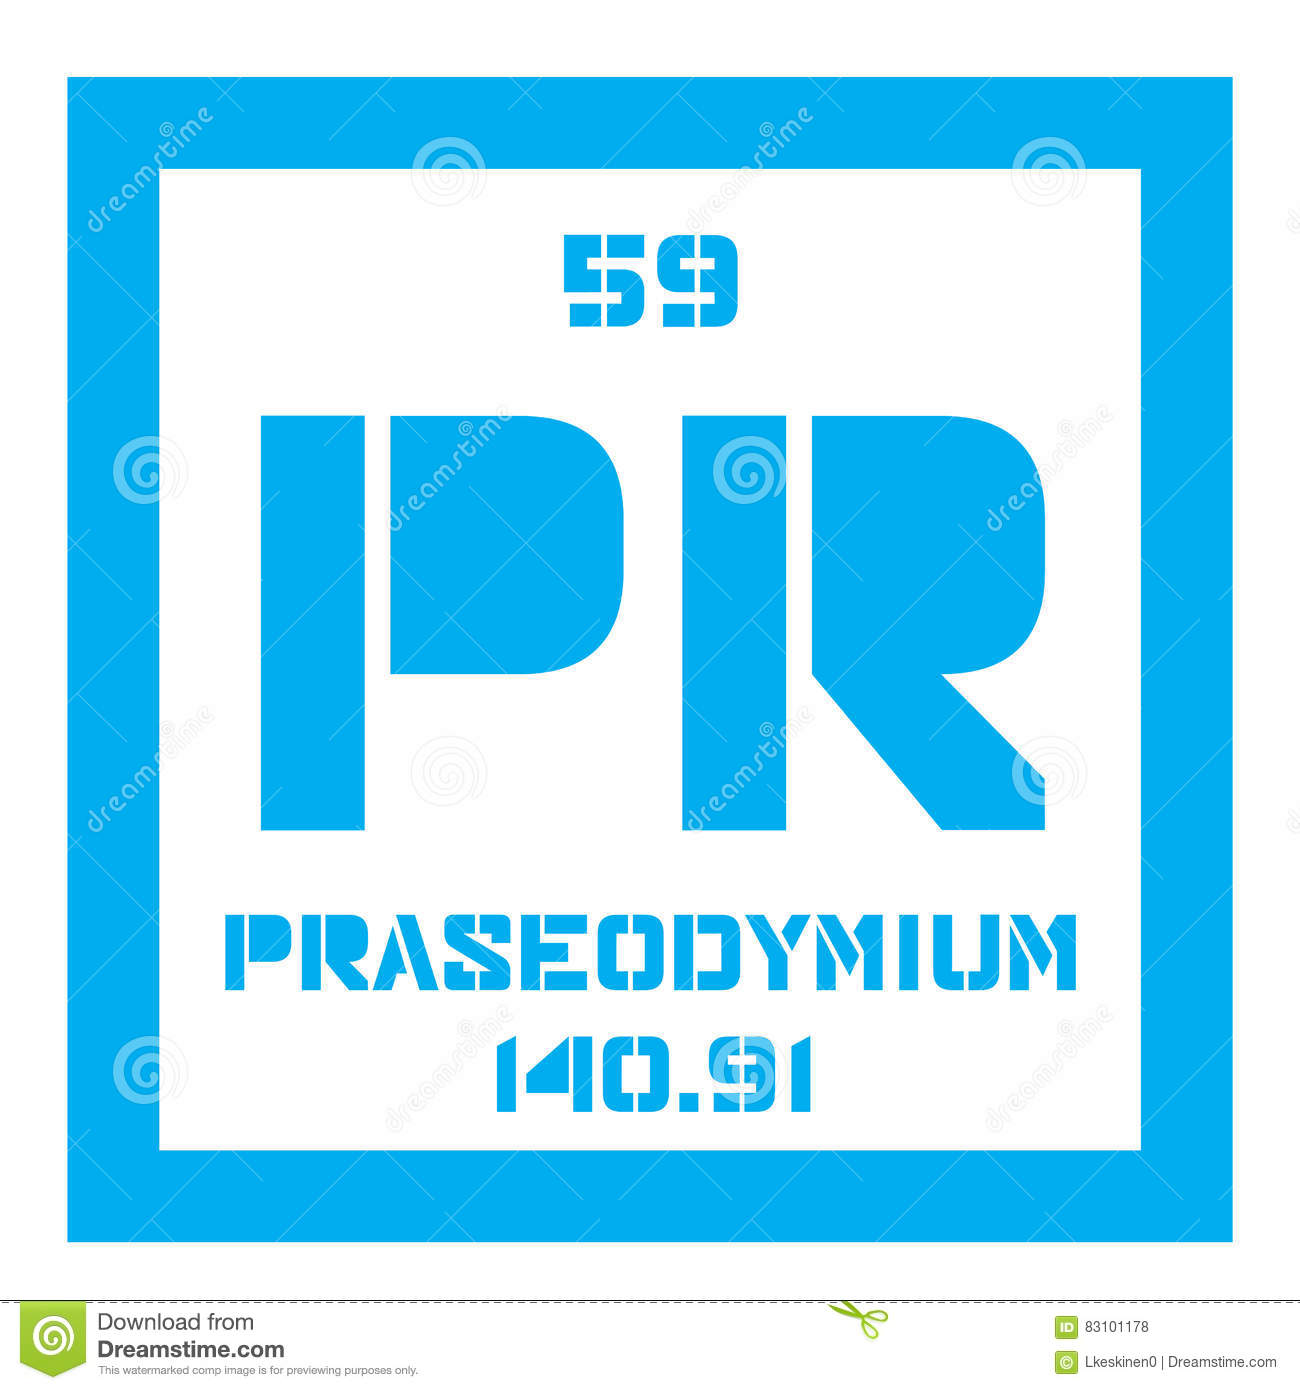 Praseodymium chemisch element